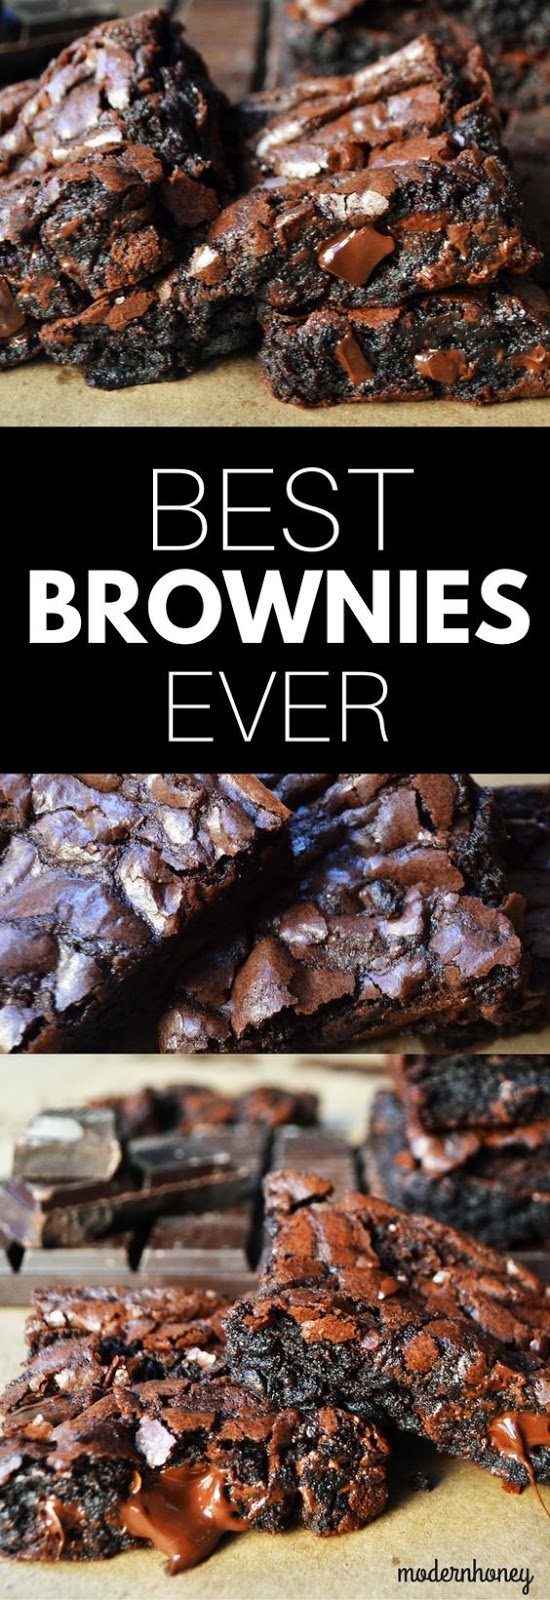 Best Chocolate Brownies Recipes - Dessert Recipes